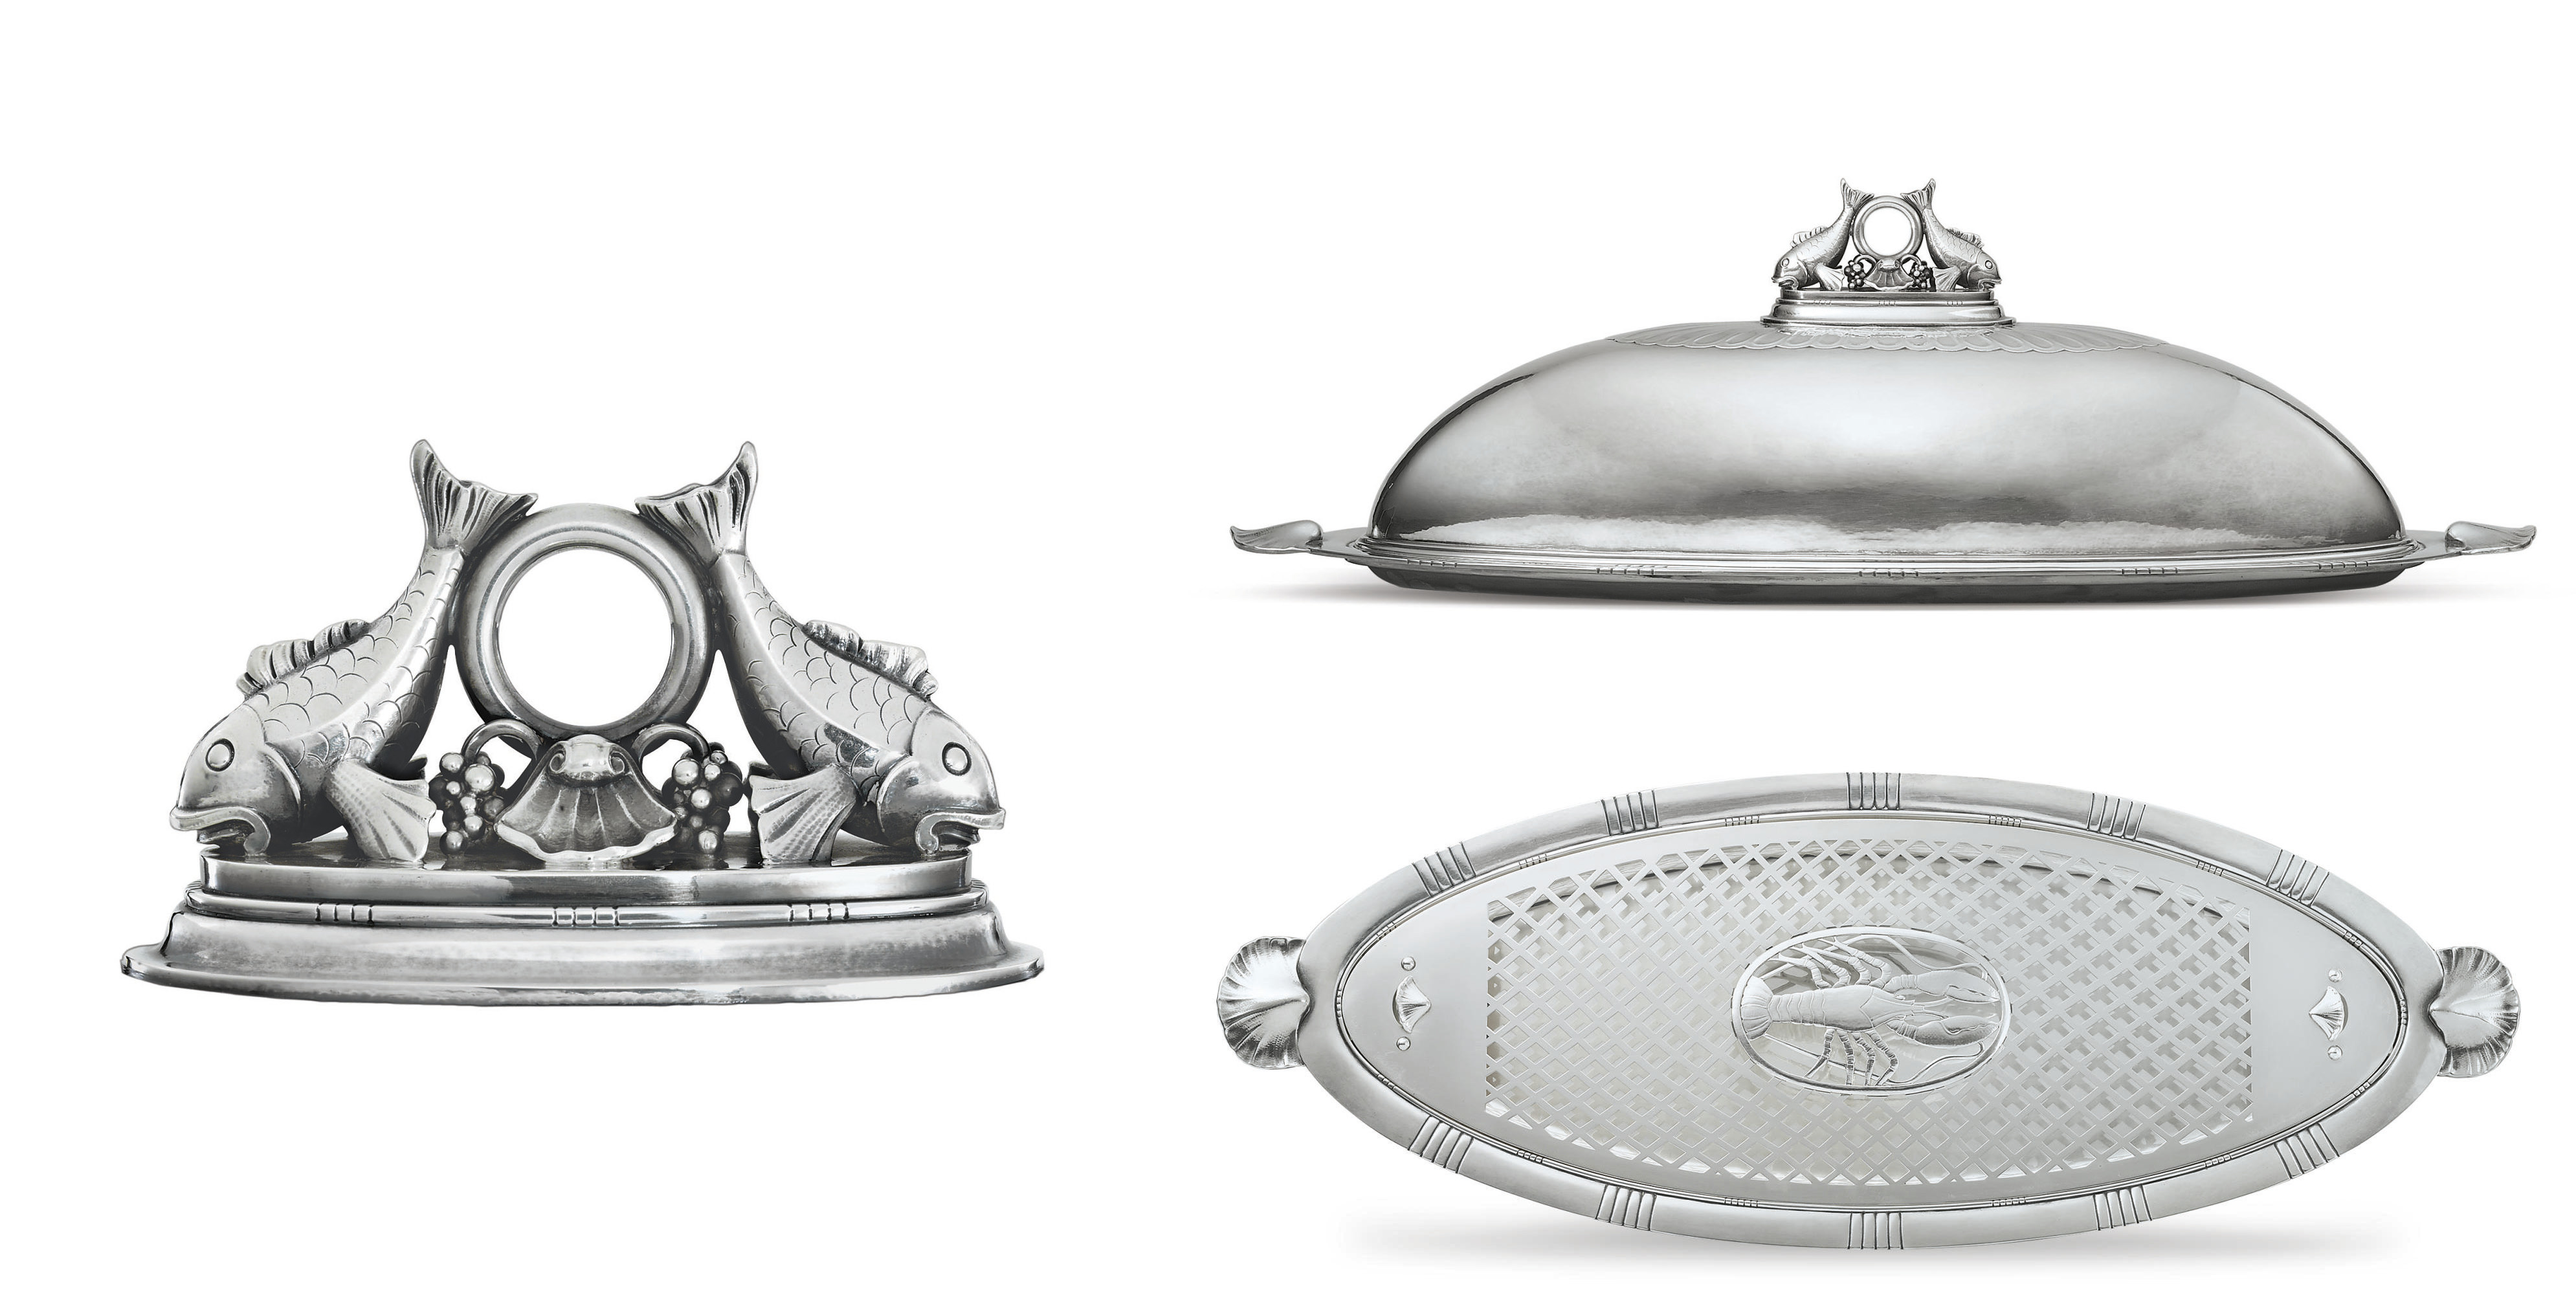 A FINE DANISH SILVER FISH PLATTER, COVER AND MAZARINE DESIGNED BY JOHAN ROHDE